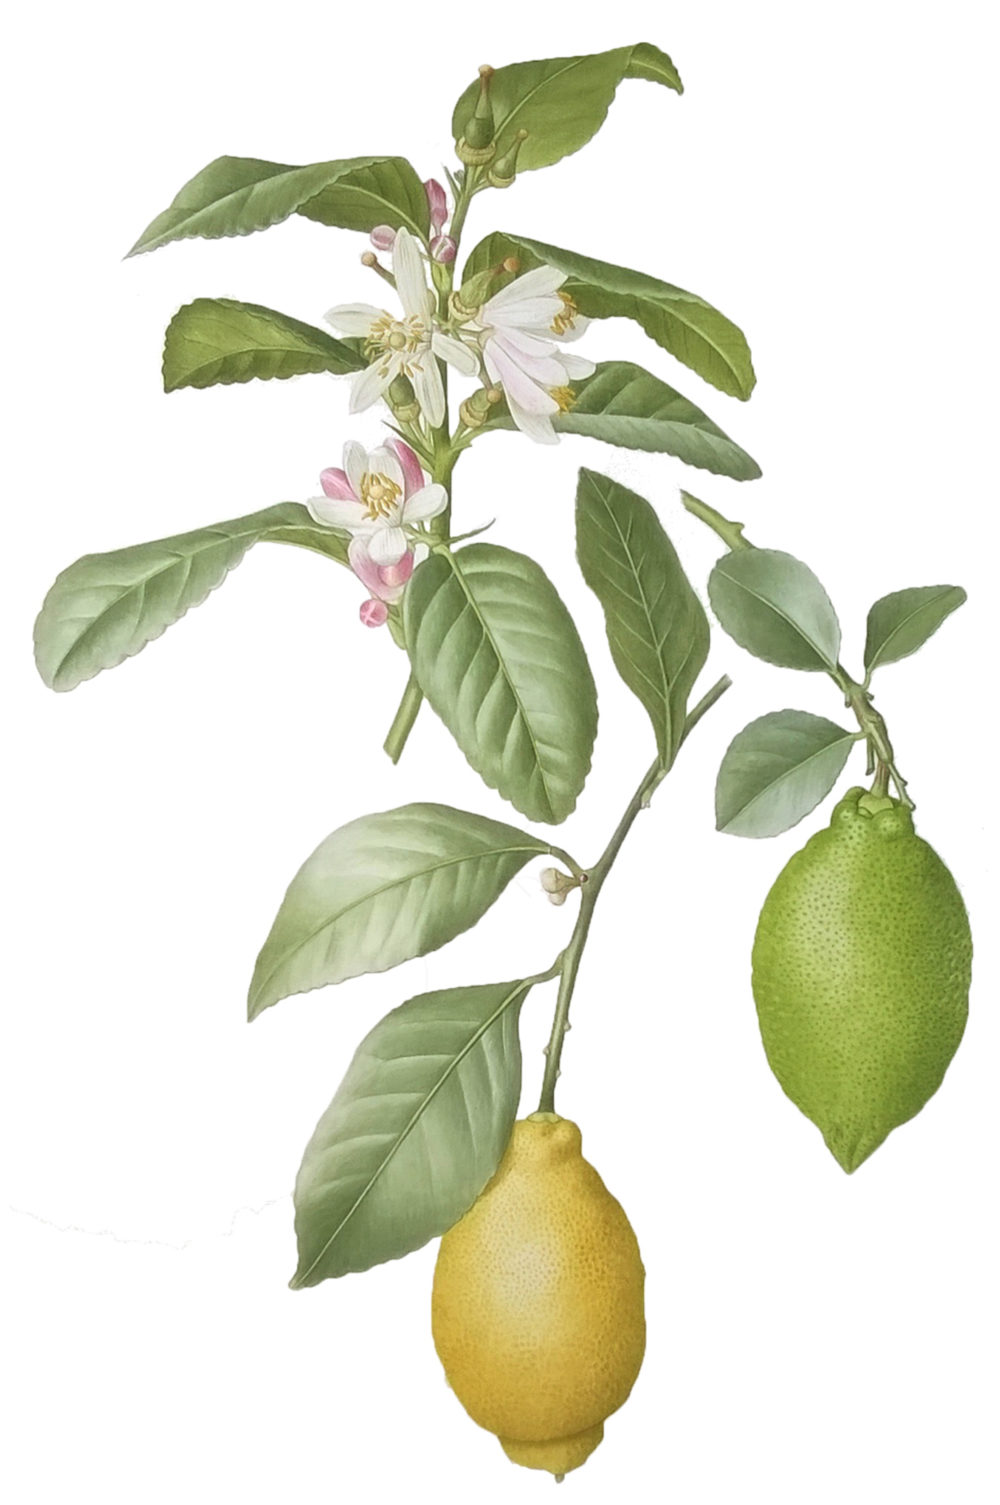 Lemon blossom and fruit